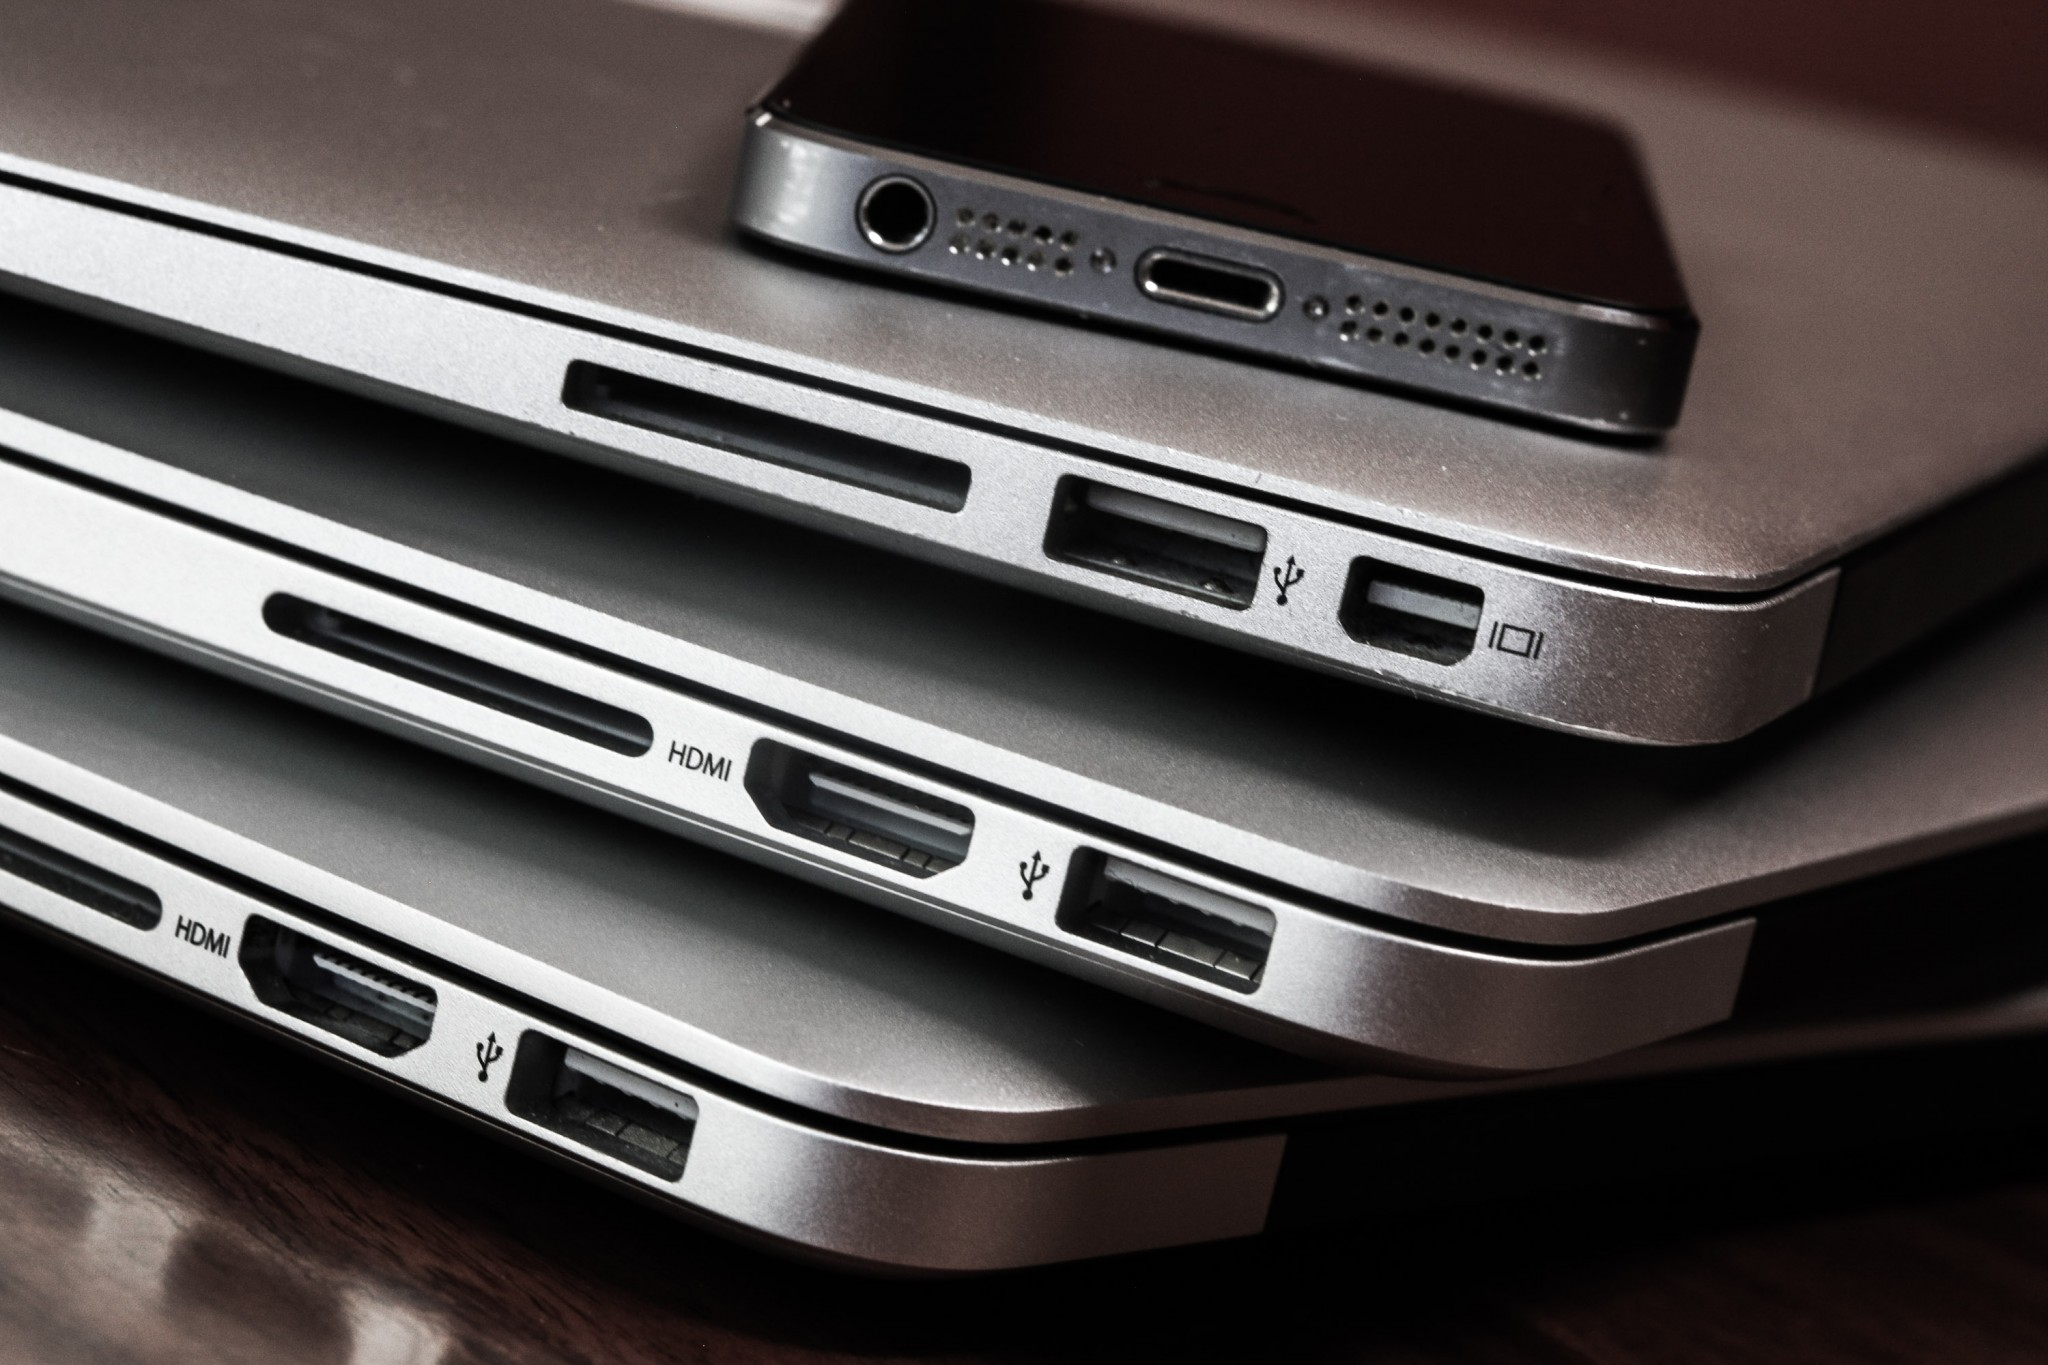 Provisioning laptops takes planning and skill